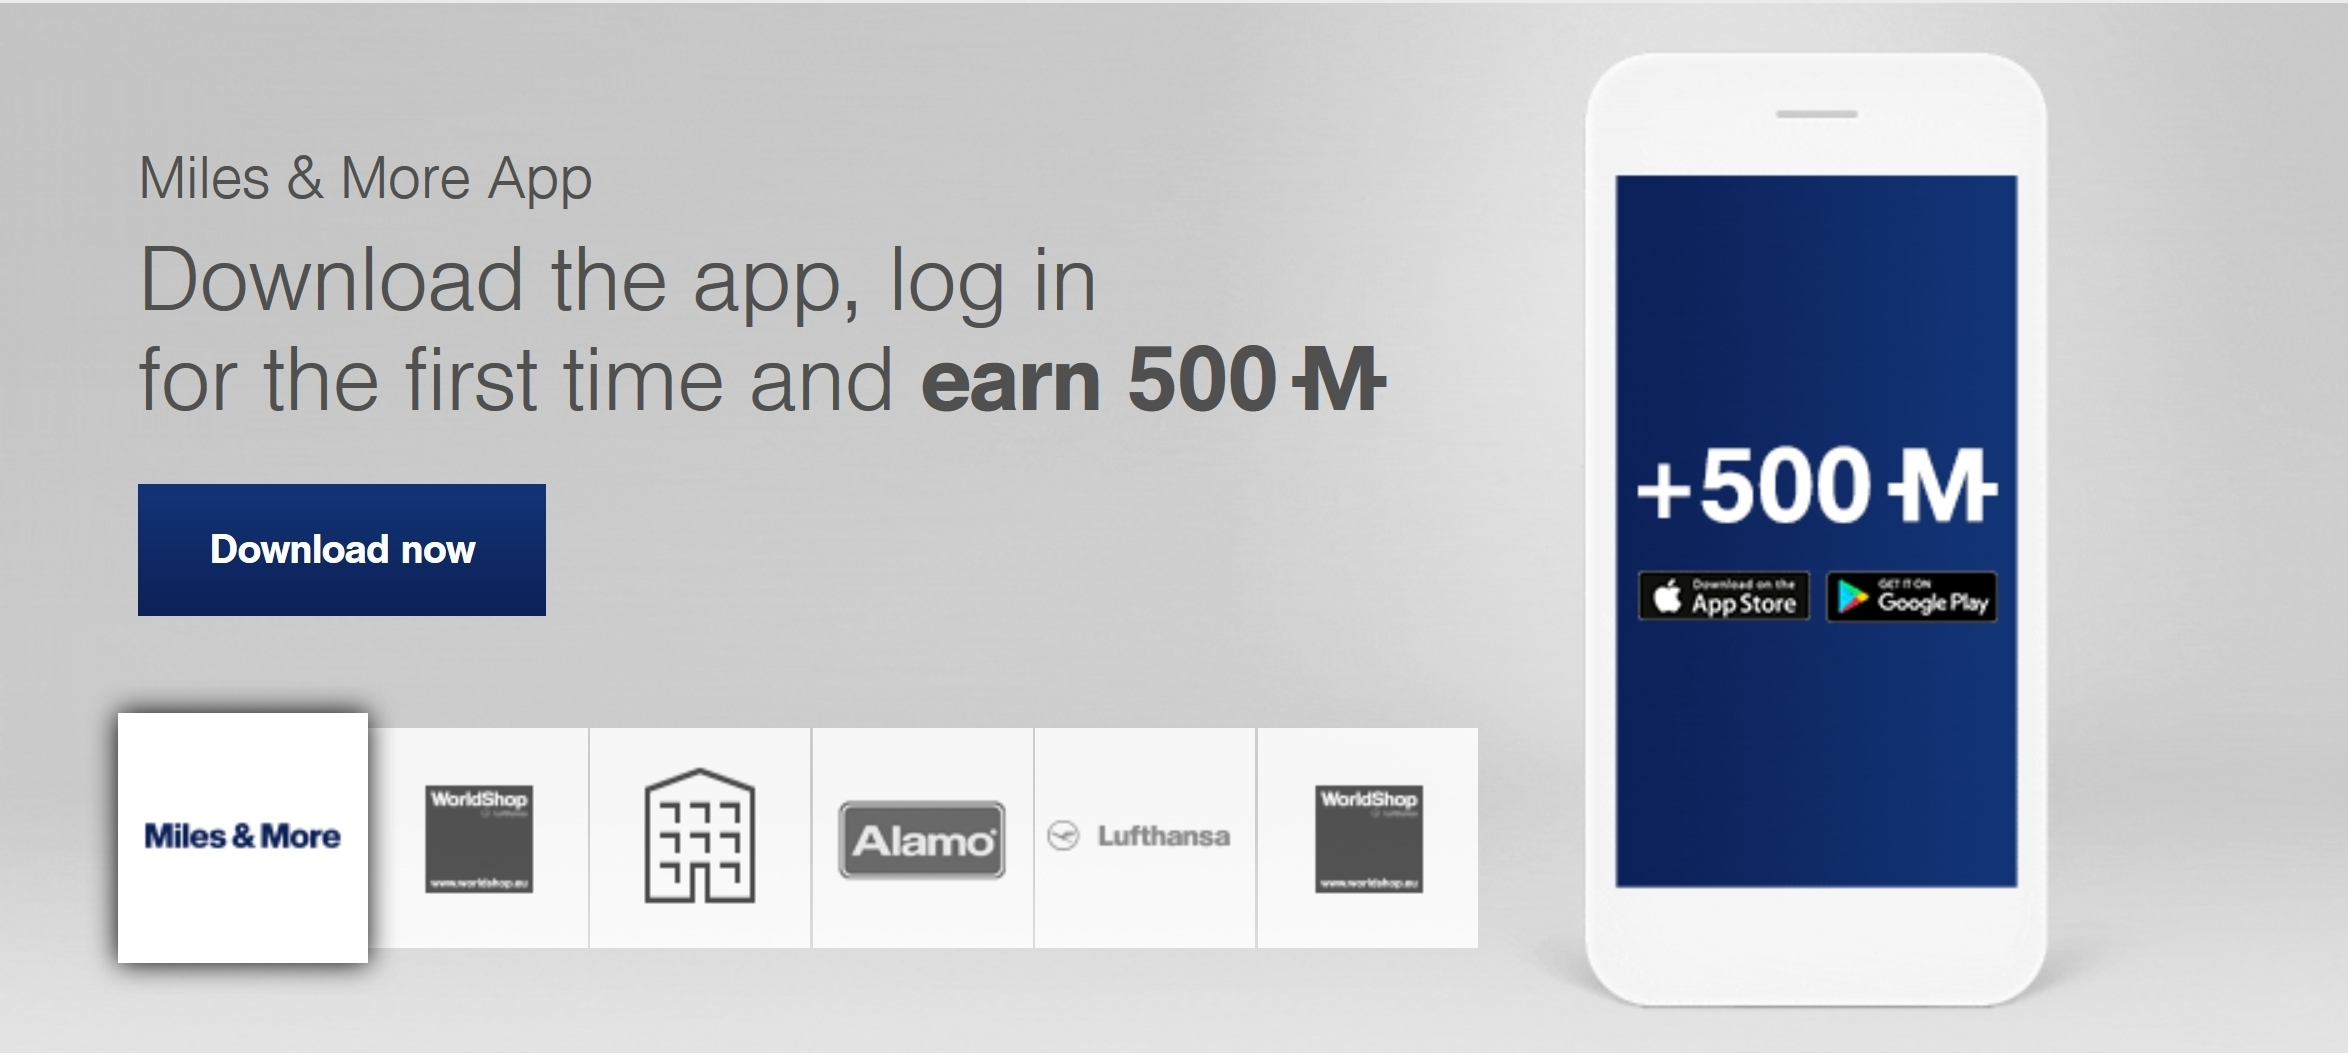 Miles And More Points Lufthansa Miles And More 500 Bonus Miles App